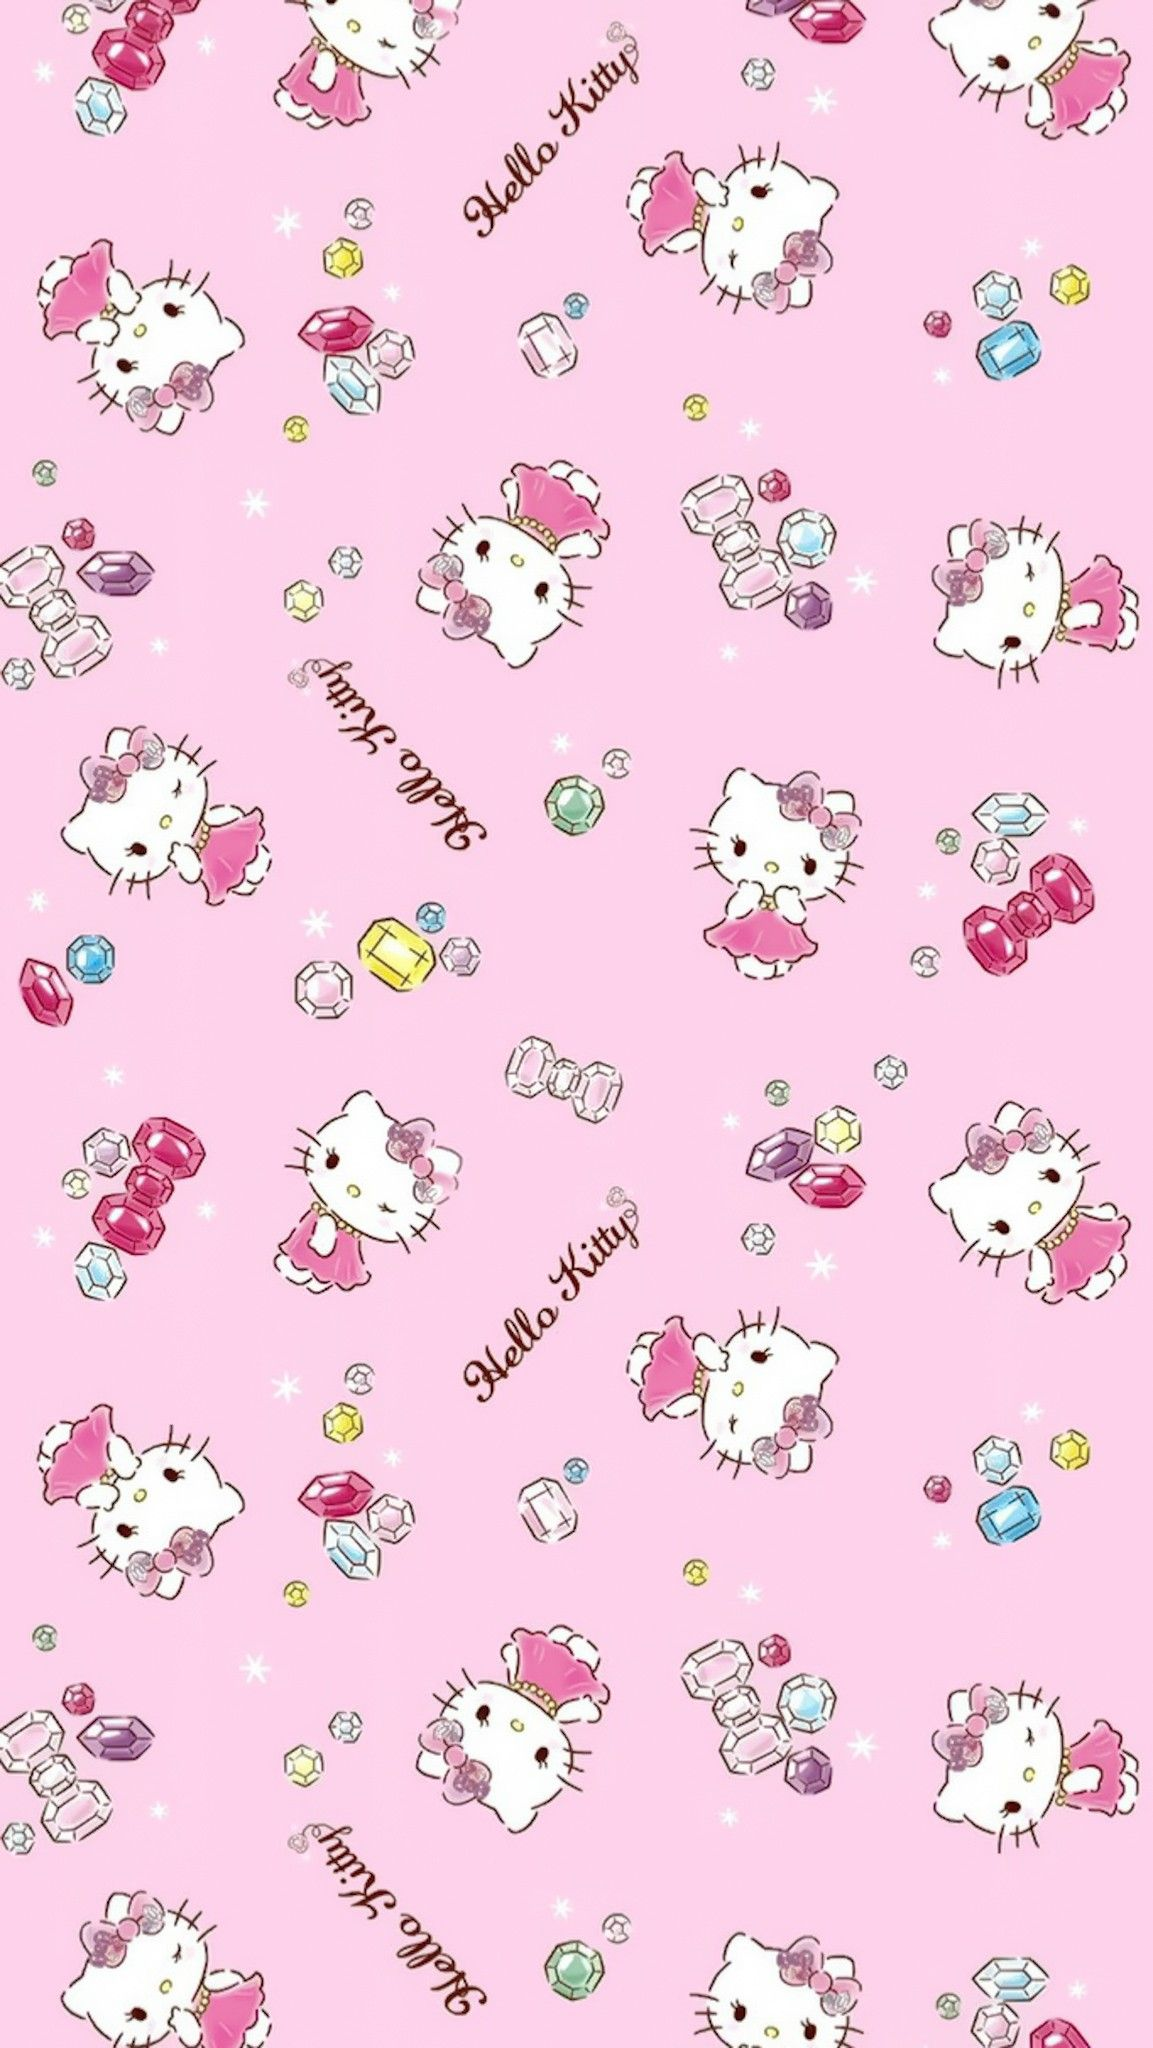 Pin By Aekkalisa On Hello Kitty Wpp In 2020 Hello Kitty Pictures Hello Kitty Coloring Hello Kitty Backgrounds